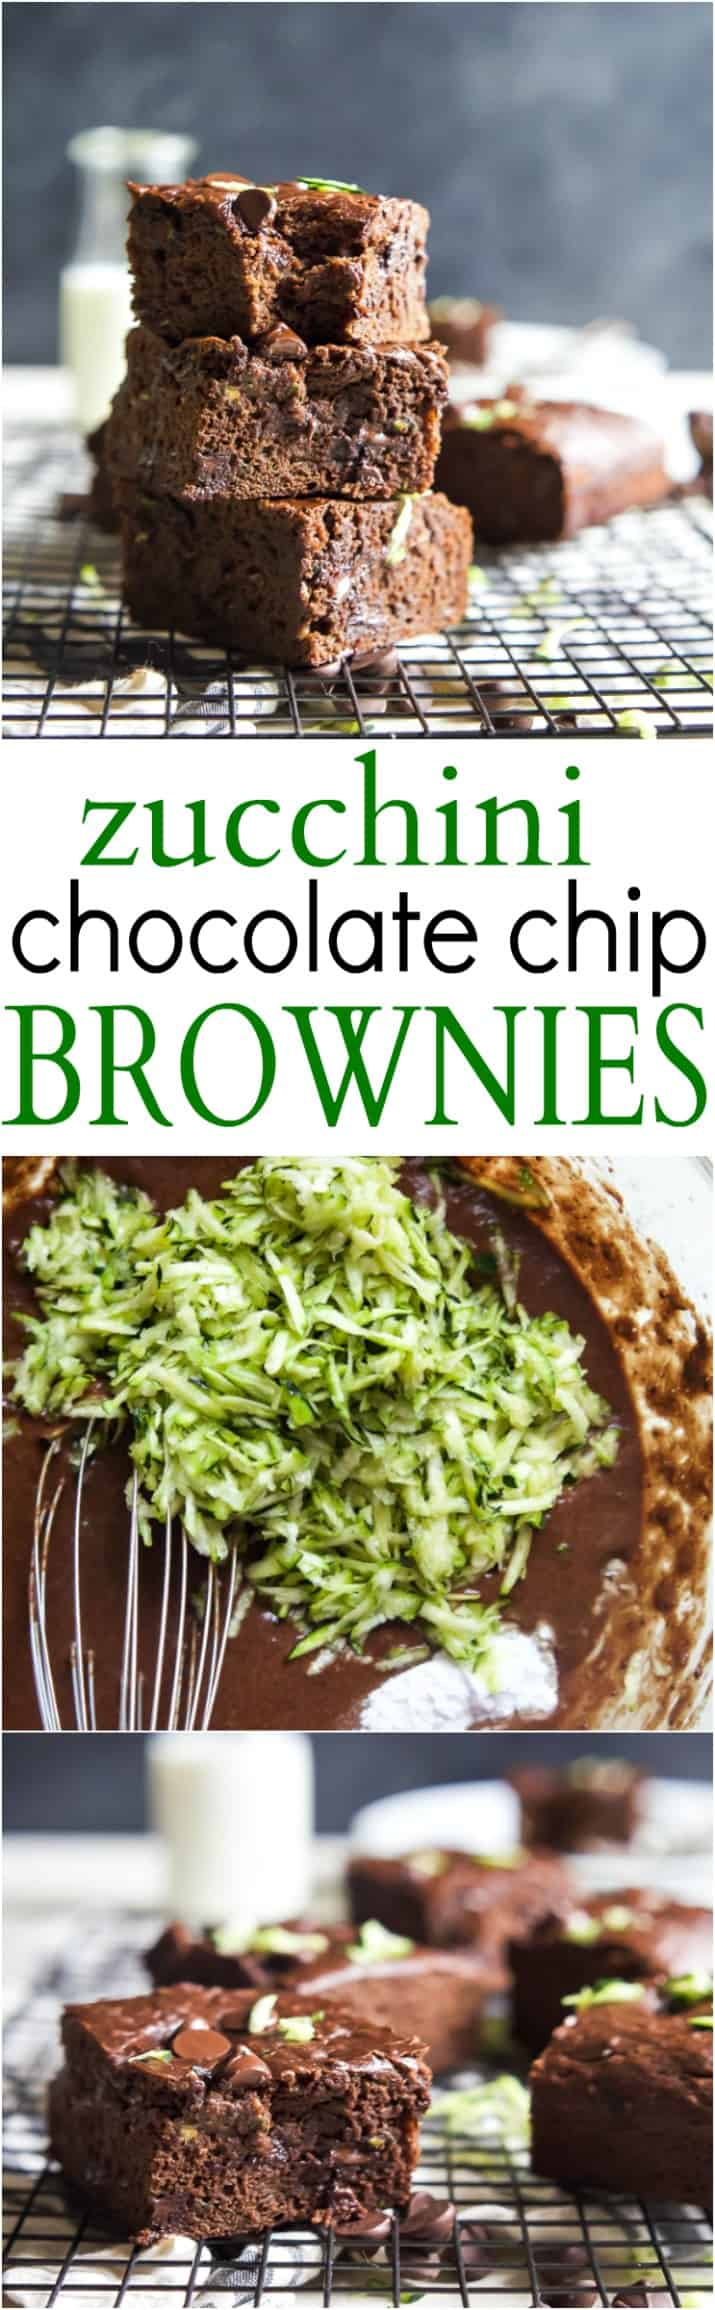 Zucchini Chocolate Chip Brownies that are oil, butter, and egg free ...